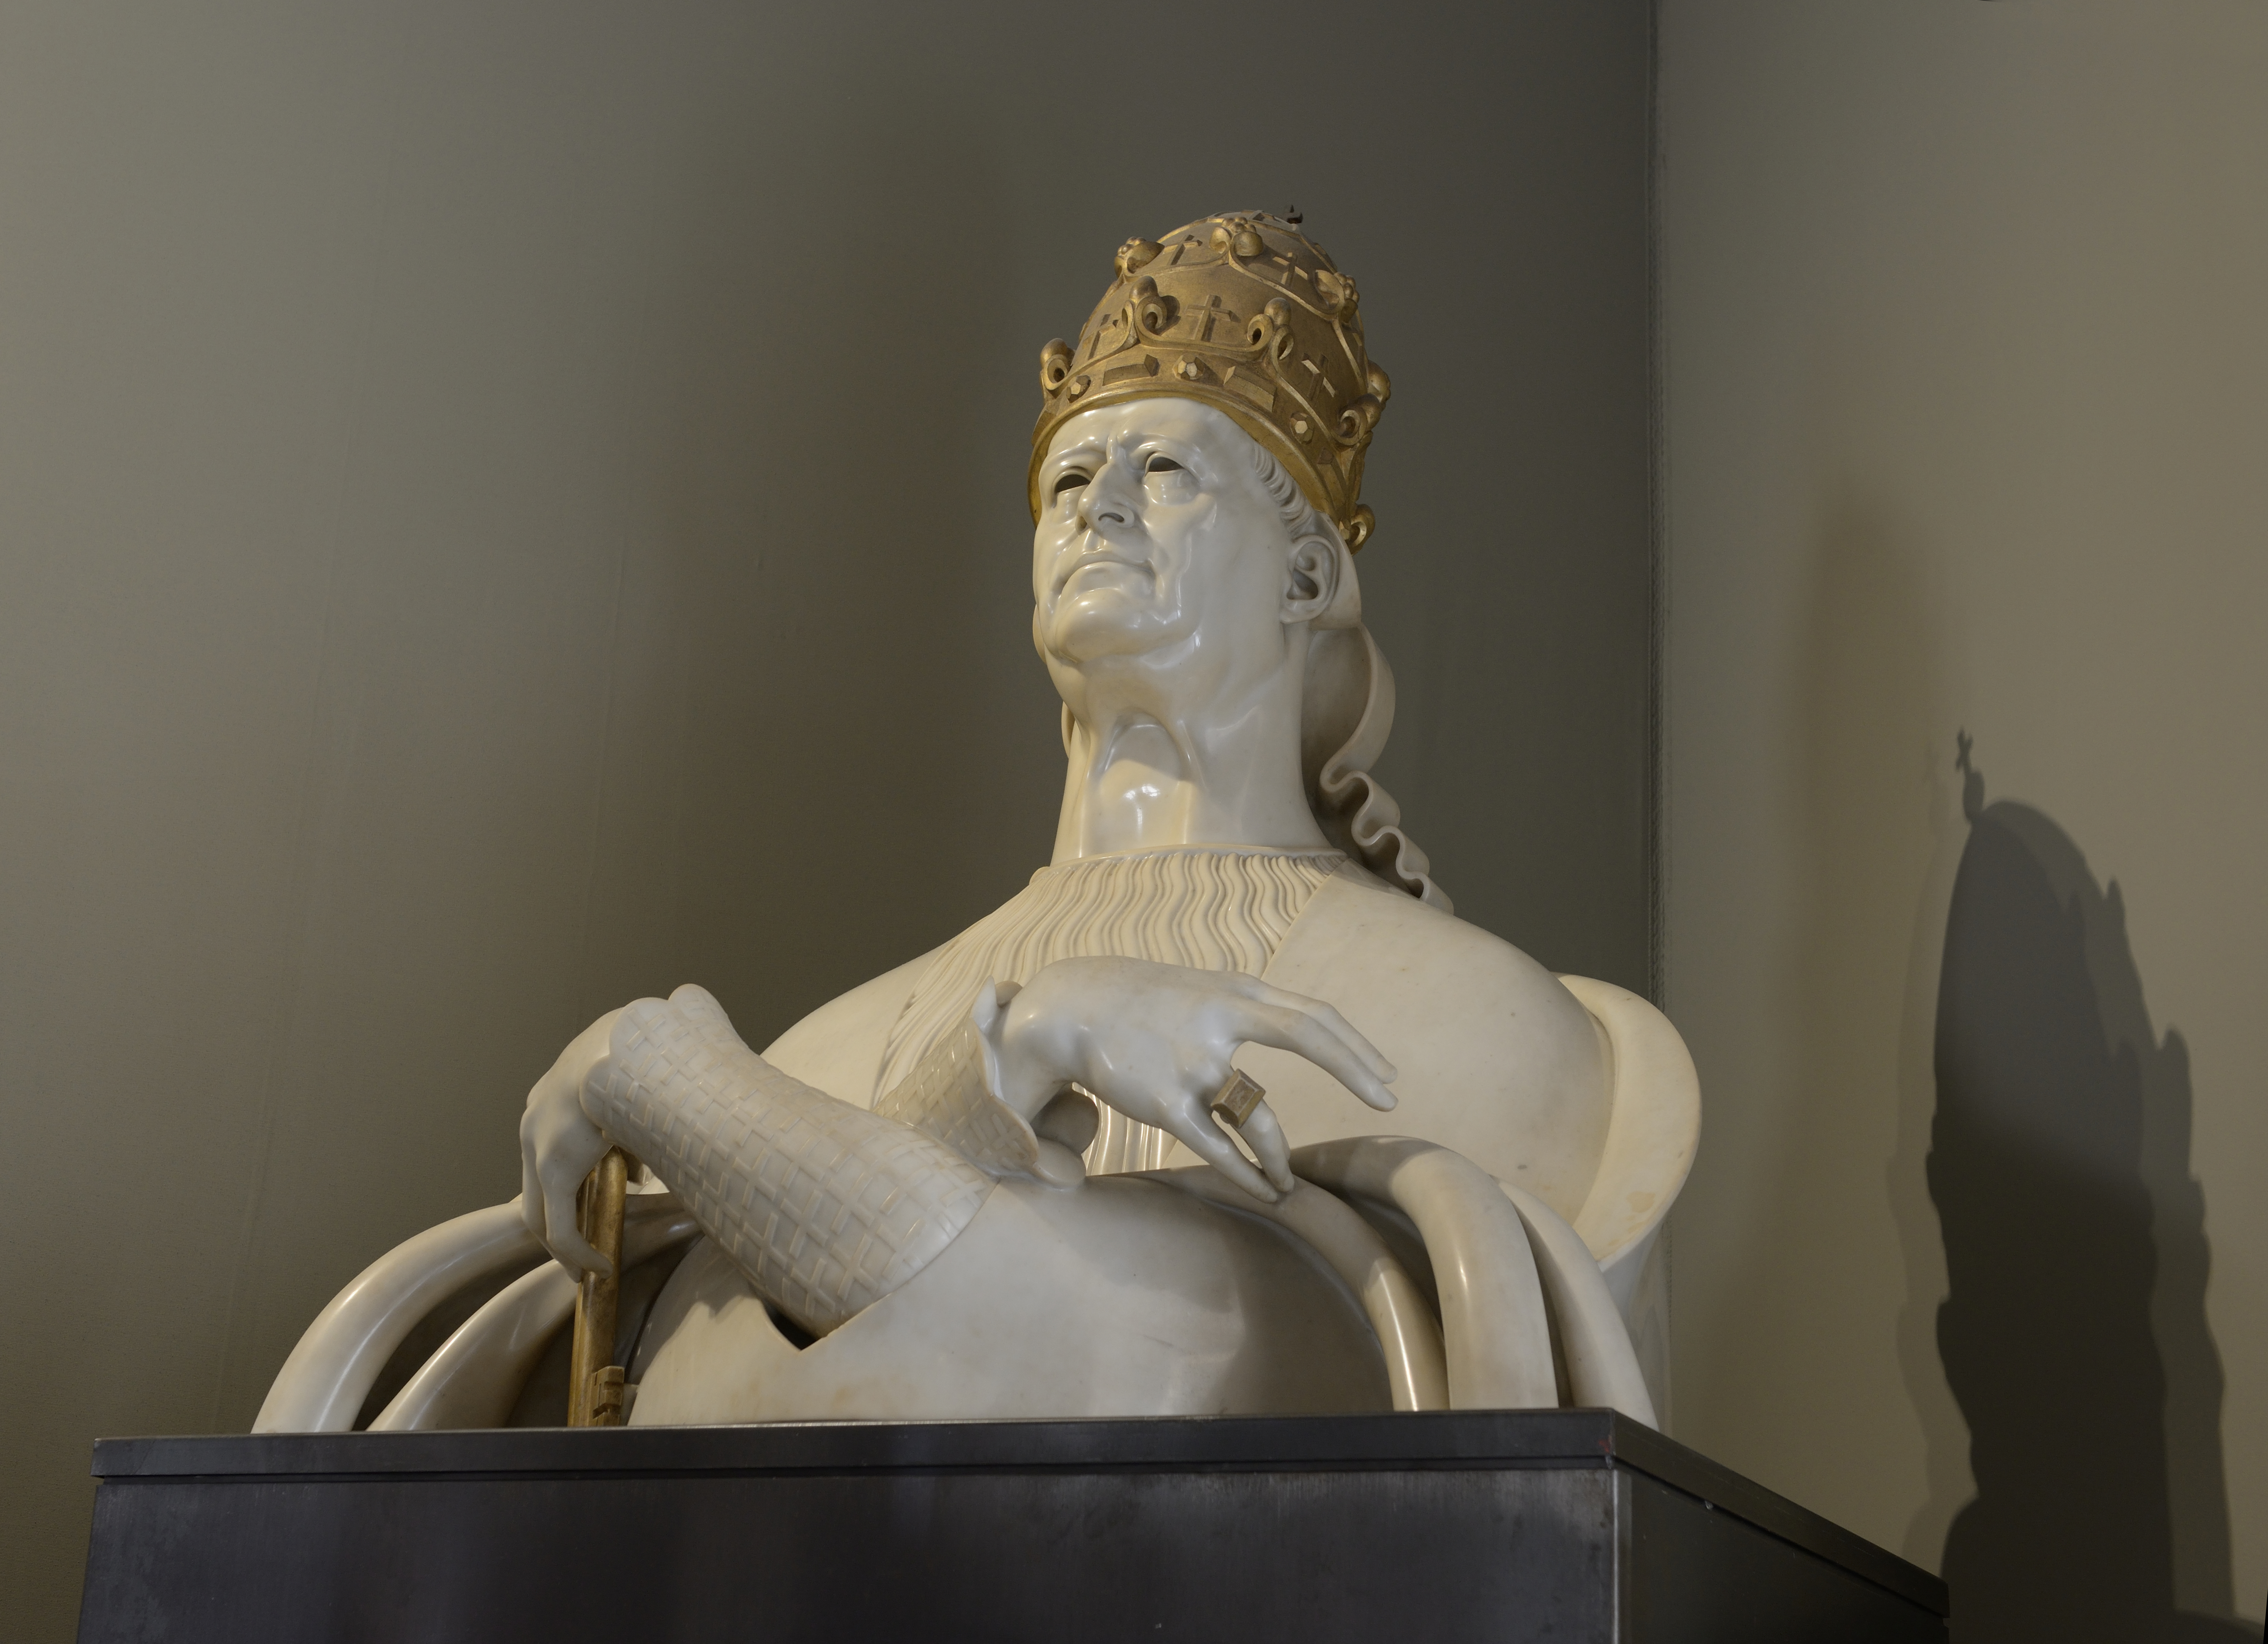 Pope Pius XI in a portrait by Adolfo Wildt exposed in the Vatican Museums  in Rome.